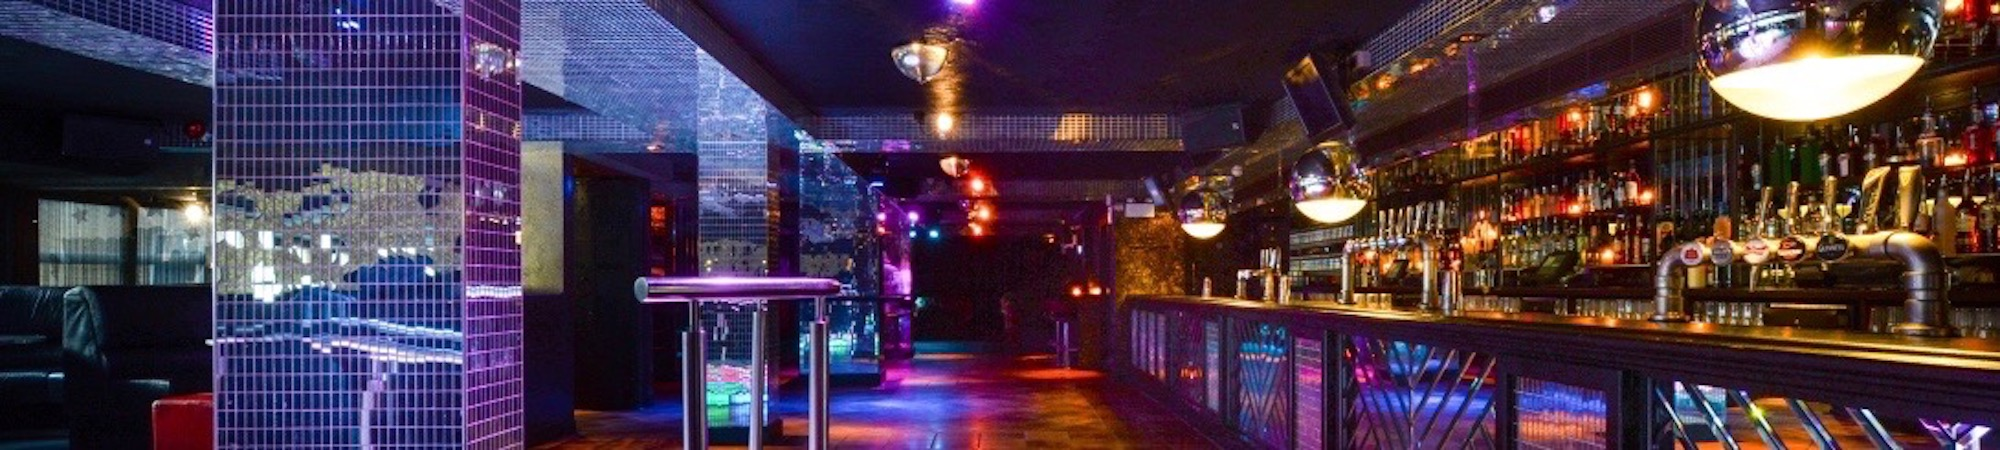 Cardiff nightlife for over 40s